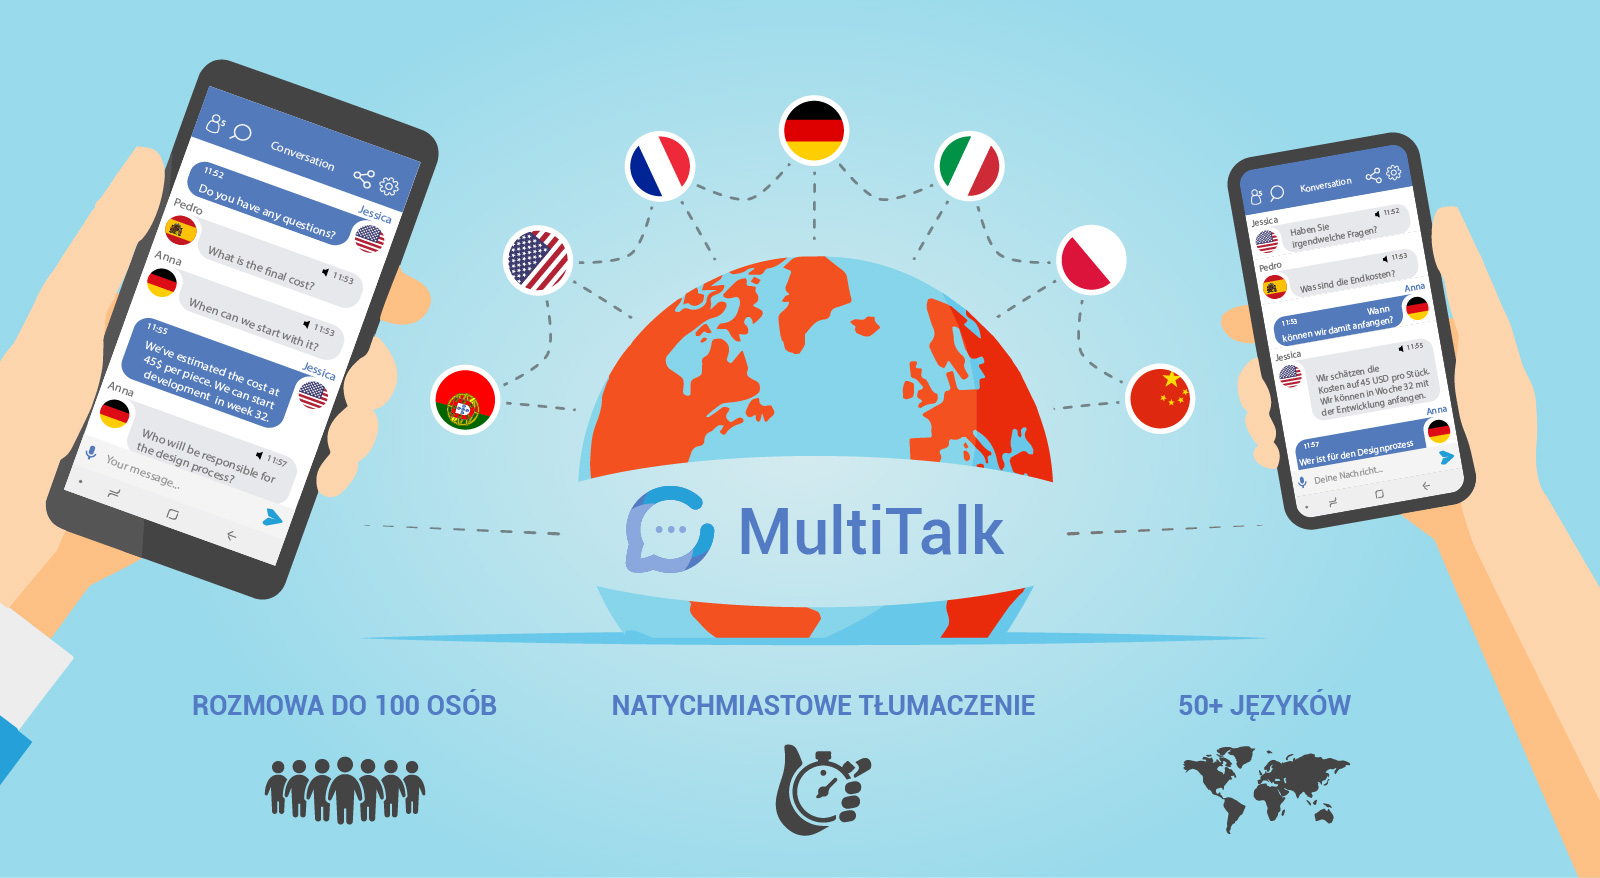 Multitalk